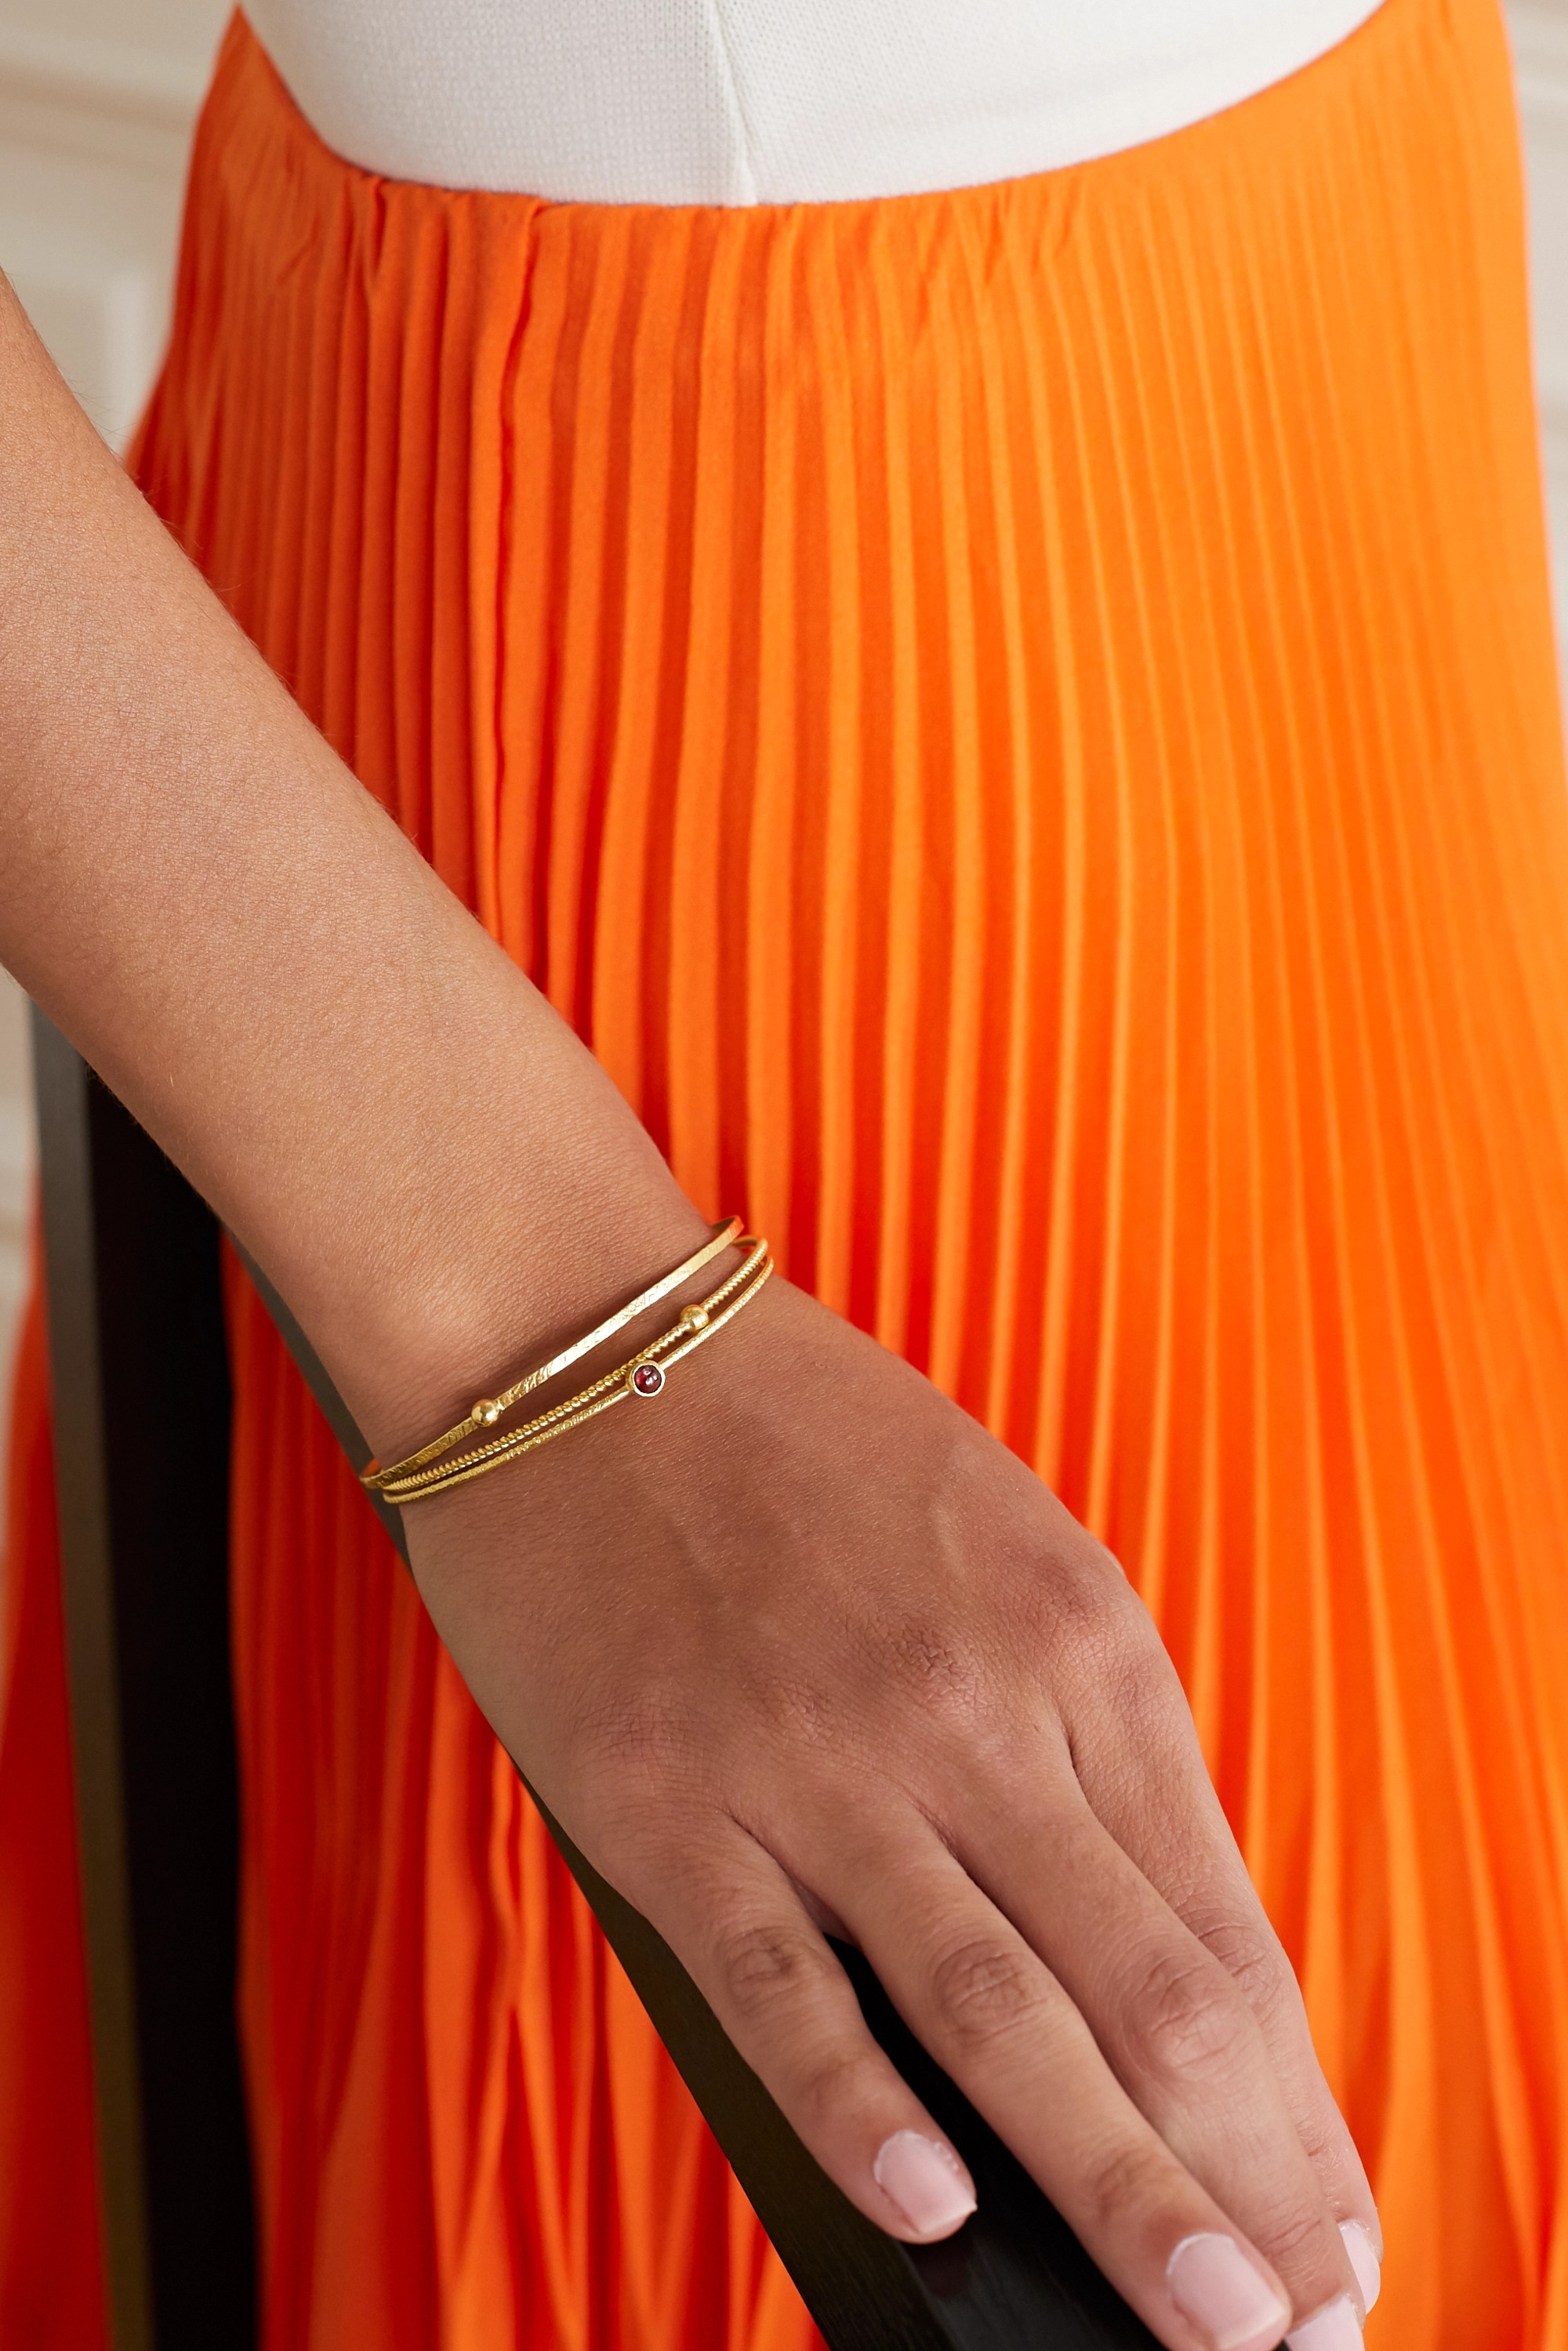 Pippa Small + NET SUSTAIN set of three 18-karat gold and spinel bangles